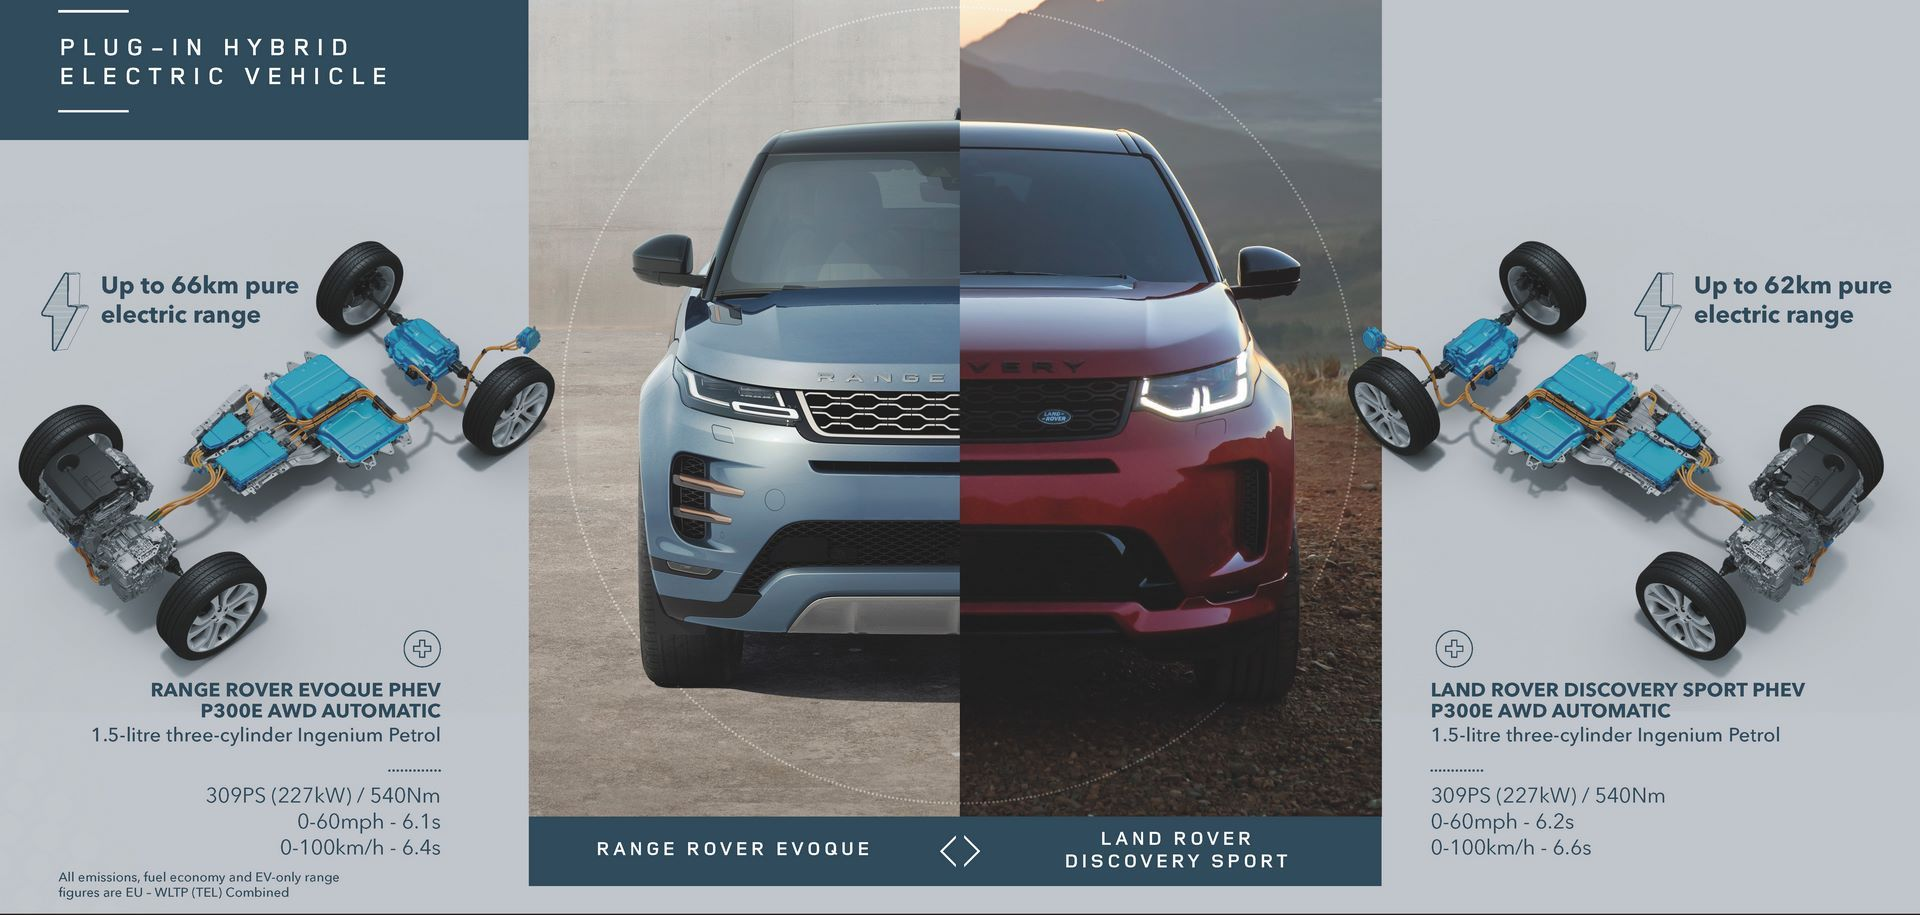 Range-Rover-Evoque-and-Land-Rover-Discovery-Sport-MHEV-diesel-25